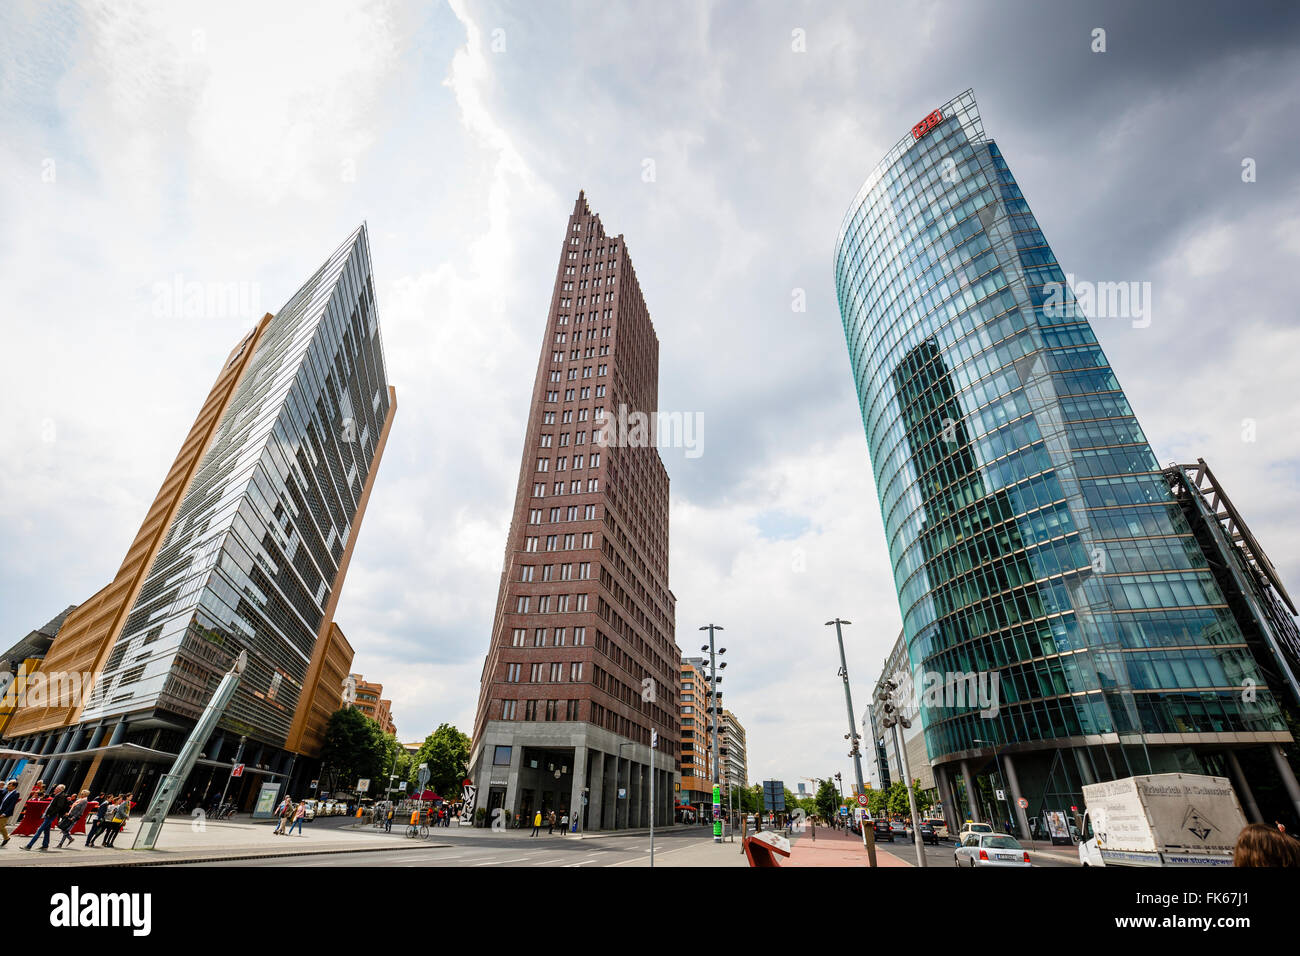 Buildings on Potsdamer Platz, Mitte, Berlin, Germany, Europe - Stock Image